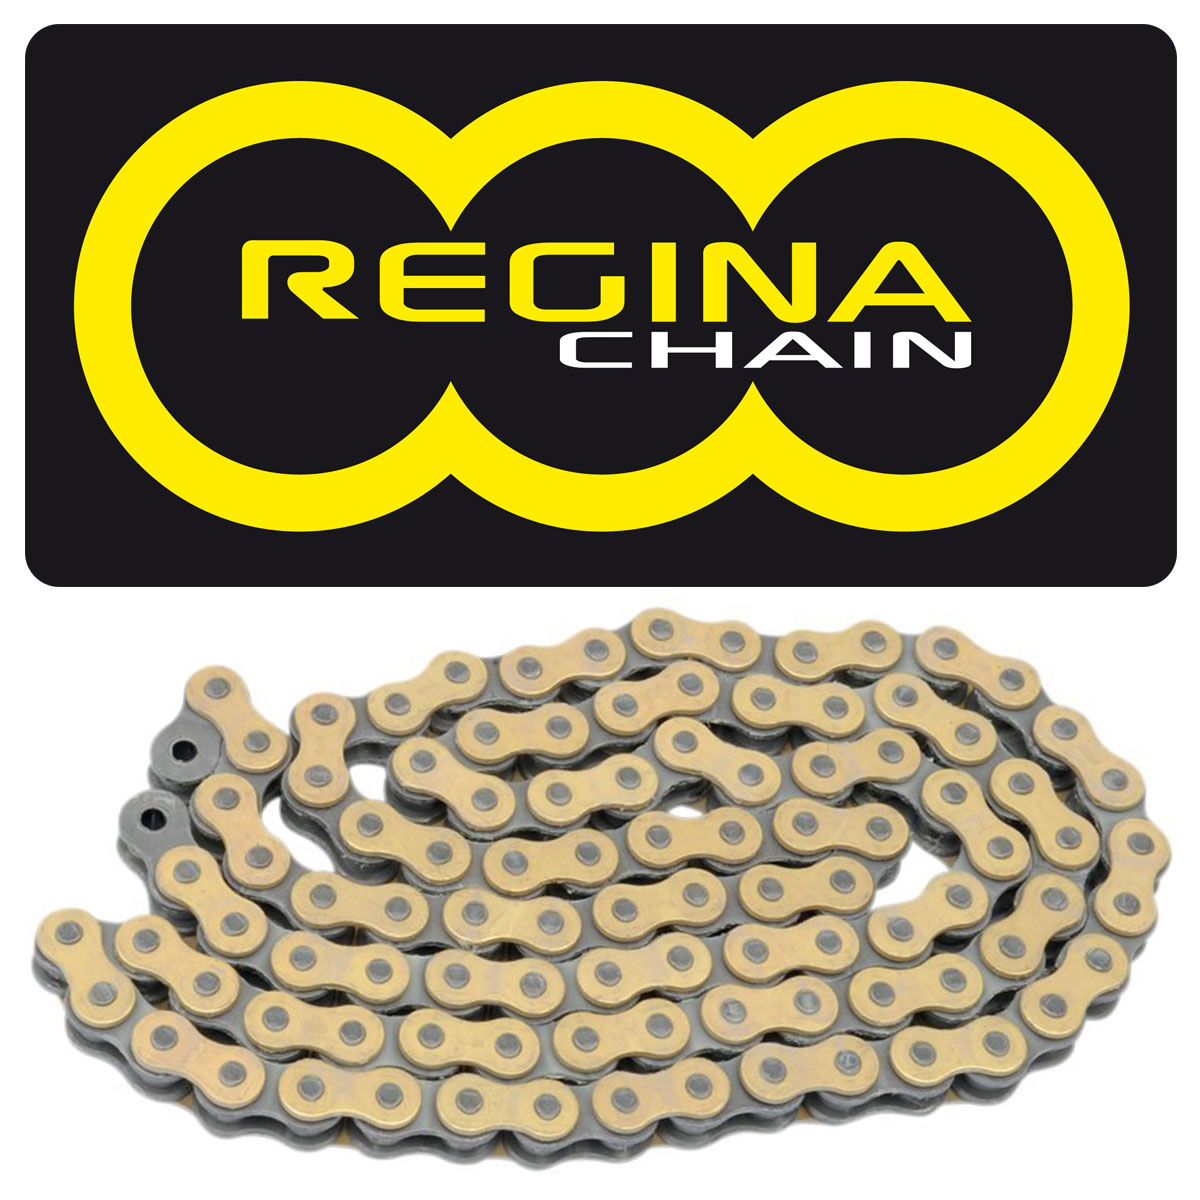 Gold EK Motor Sport 525 ZVX3 Series ZX-Ring Chain Color: Gold Chain Length: 120 Chain Application: All 120 Links Chain Type: 525